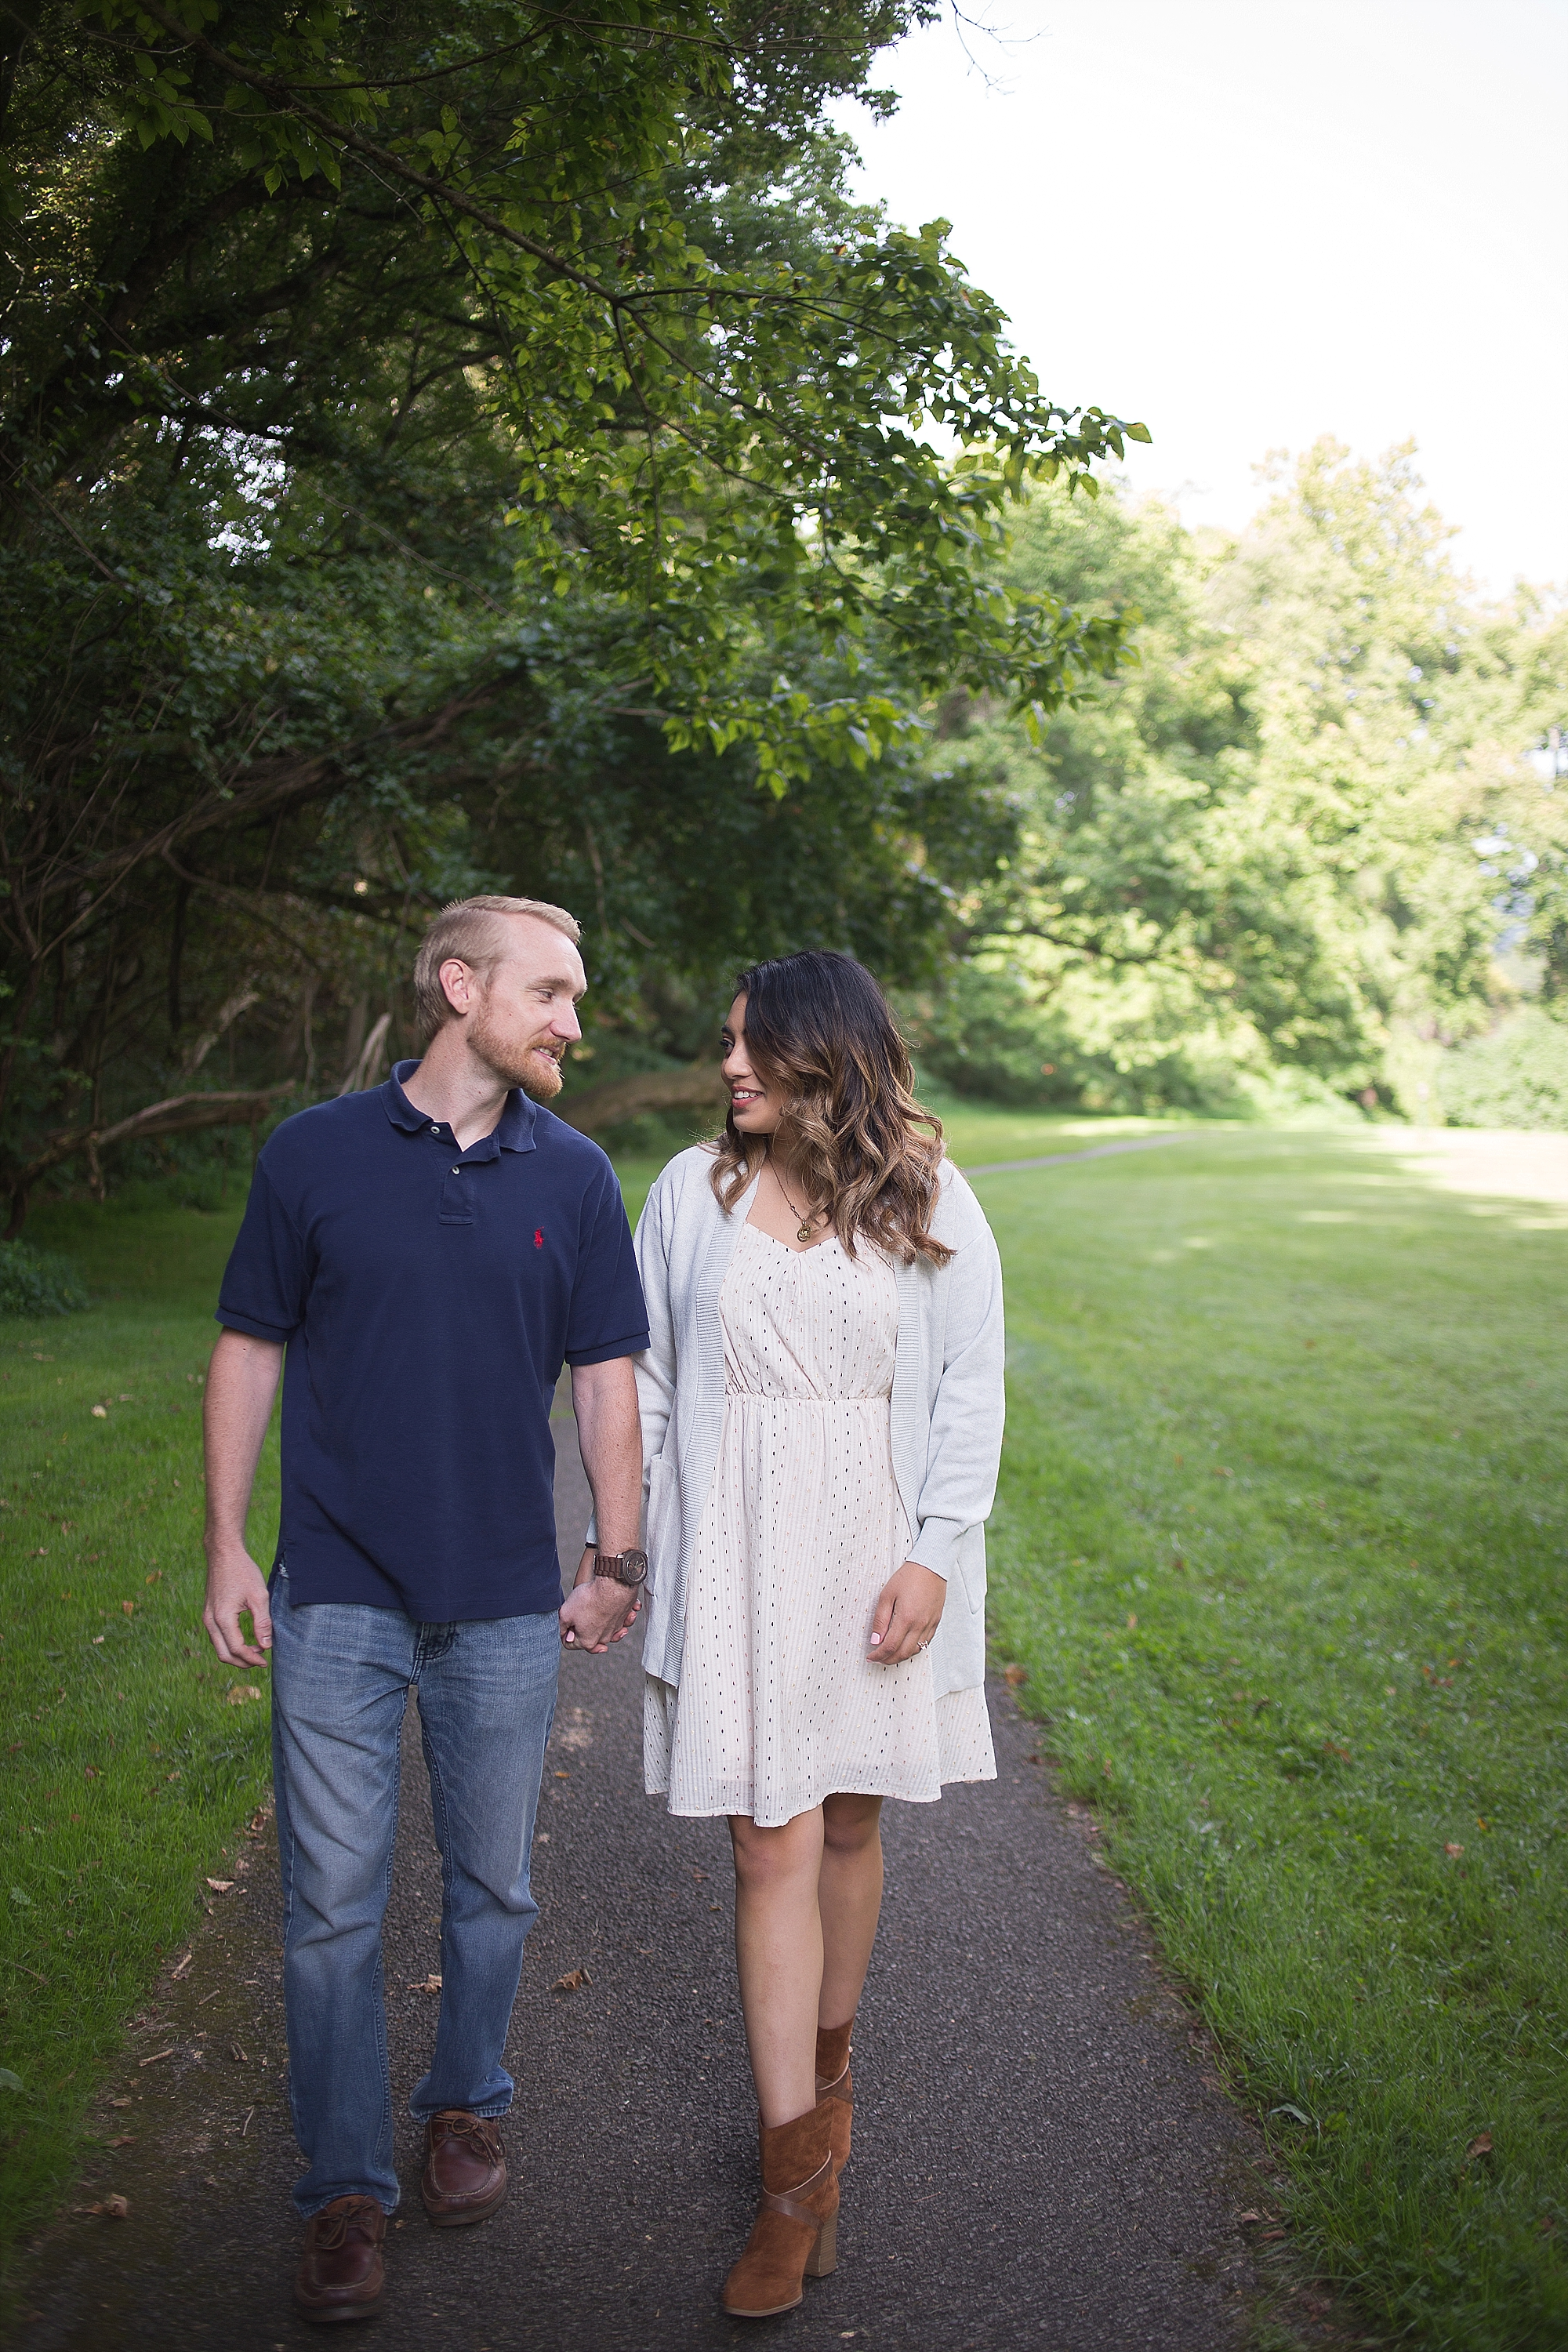 Taylor + Mel's Radford Engagement Photos | Engagement Photos at Raford Coffee Co and Bissett Park by Holly Cromer